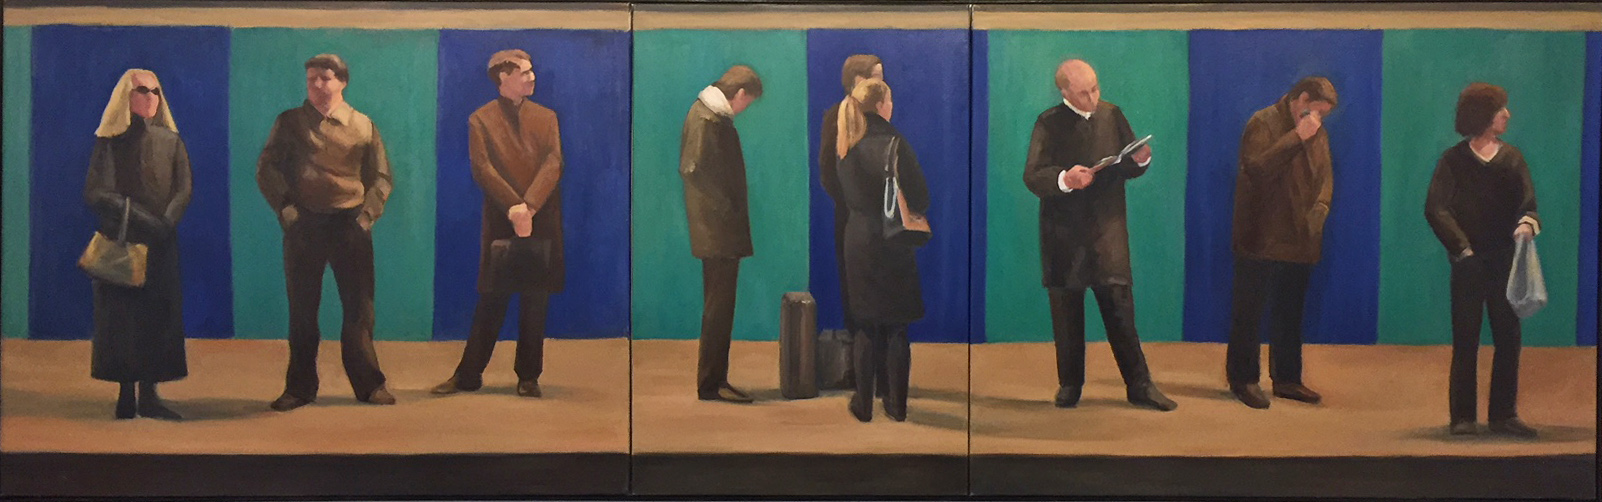 Metro Frieze,92x29in.,oil